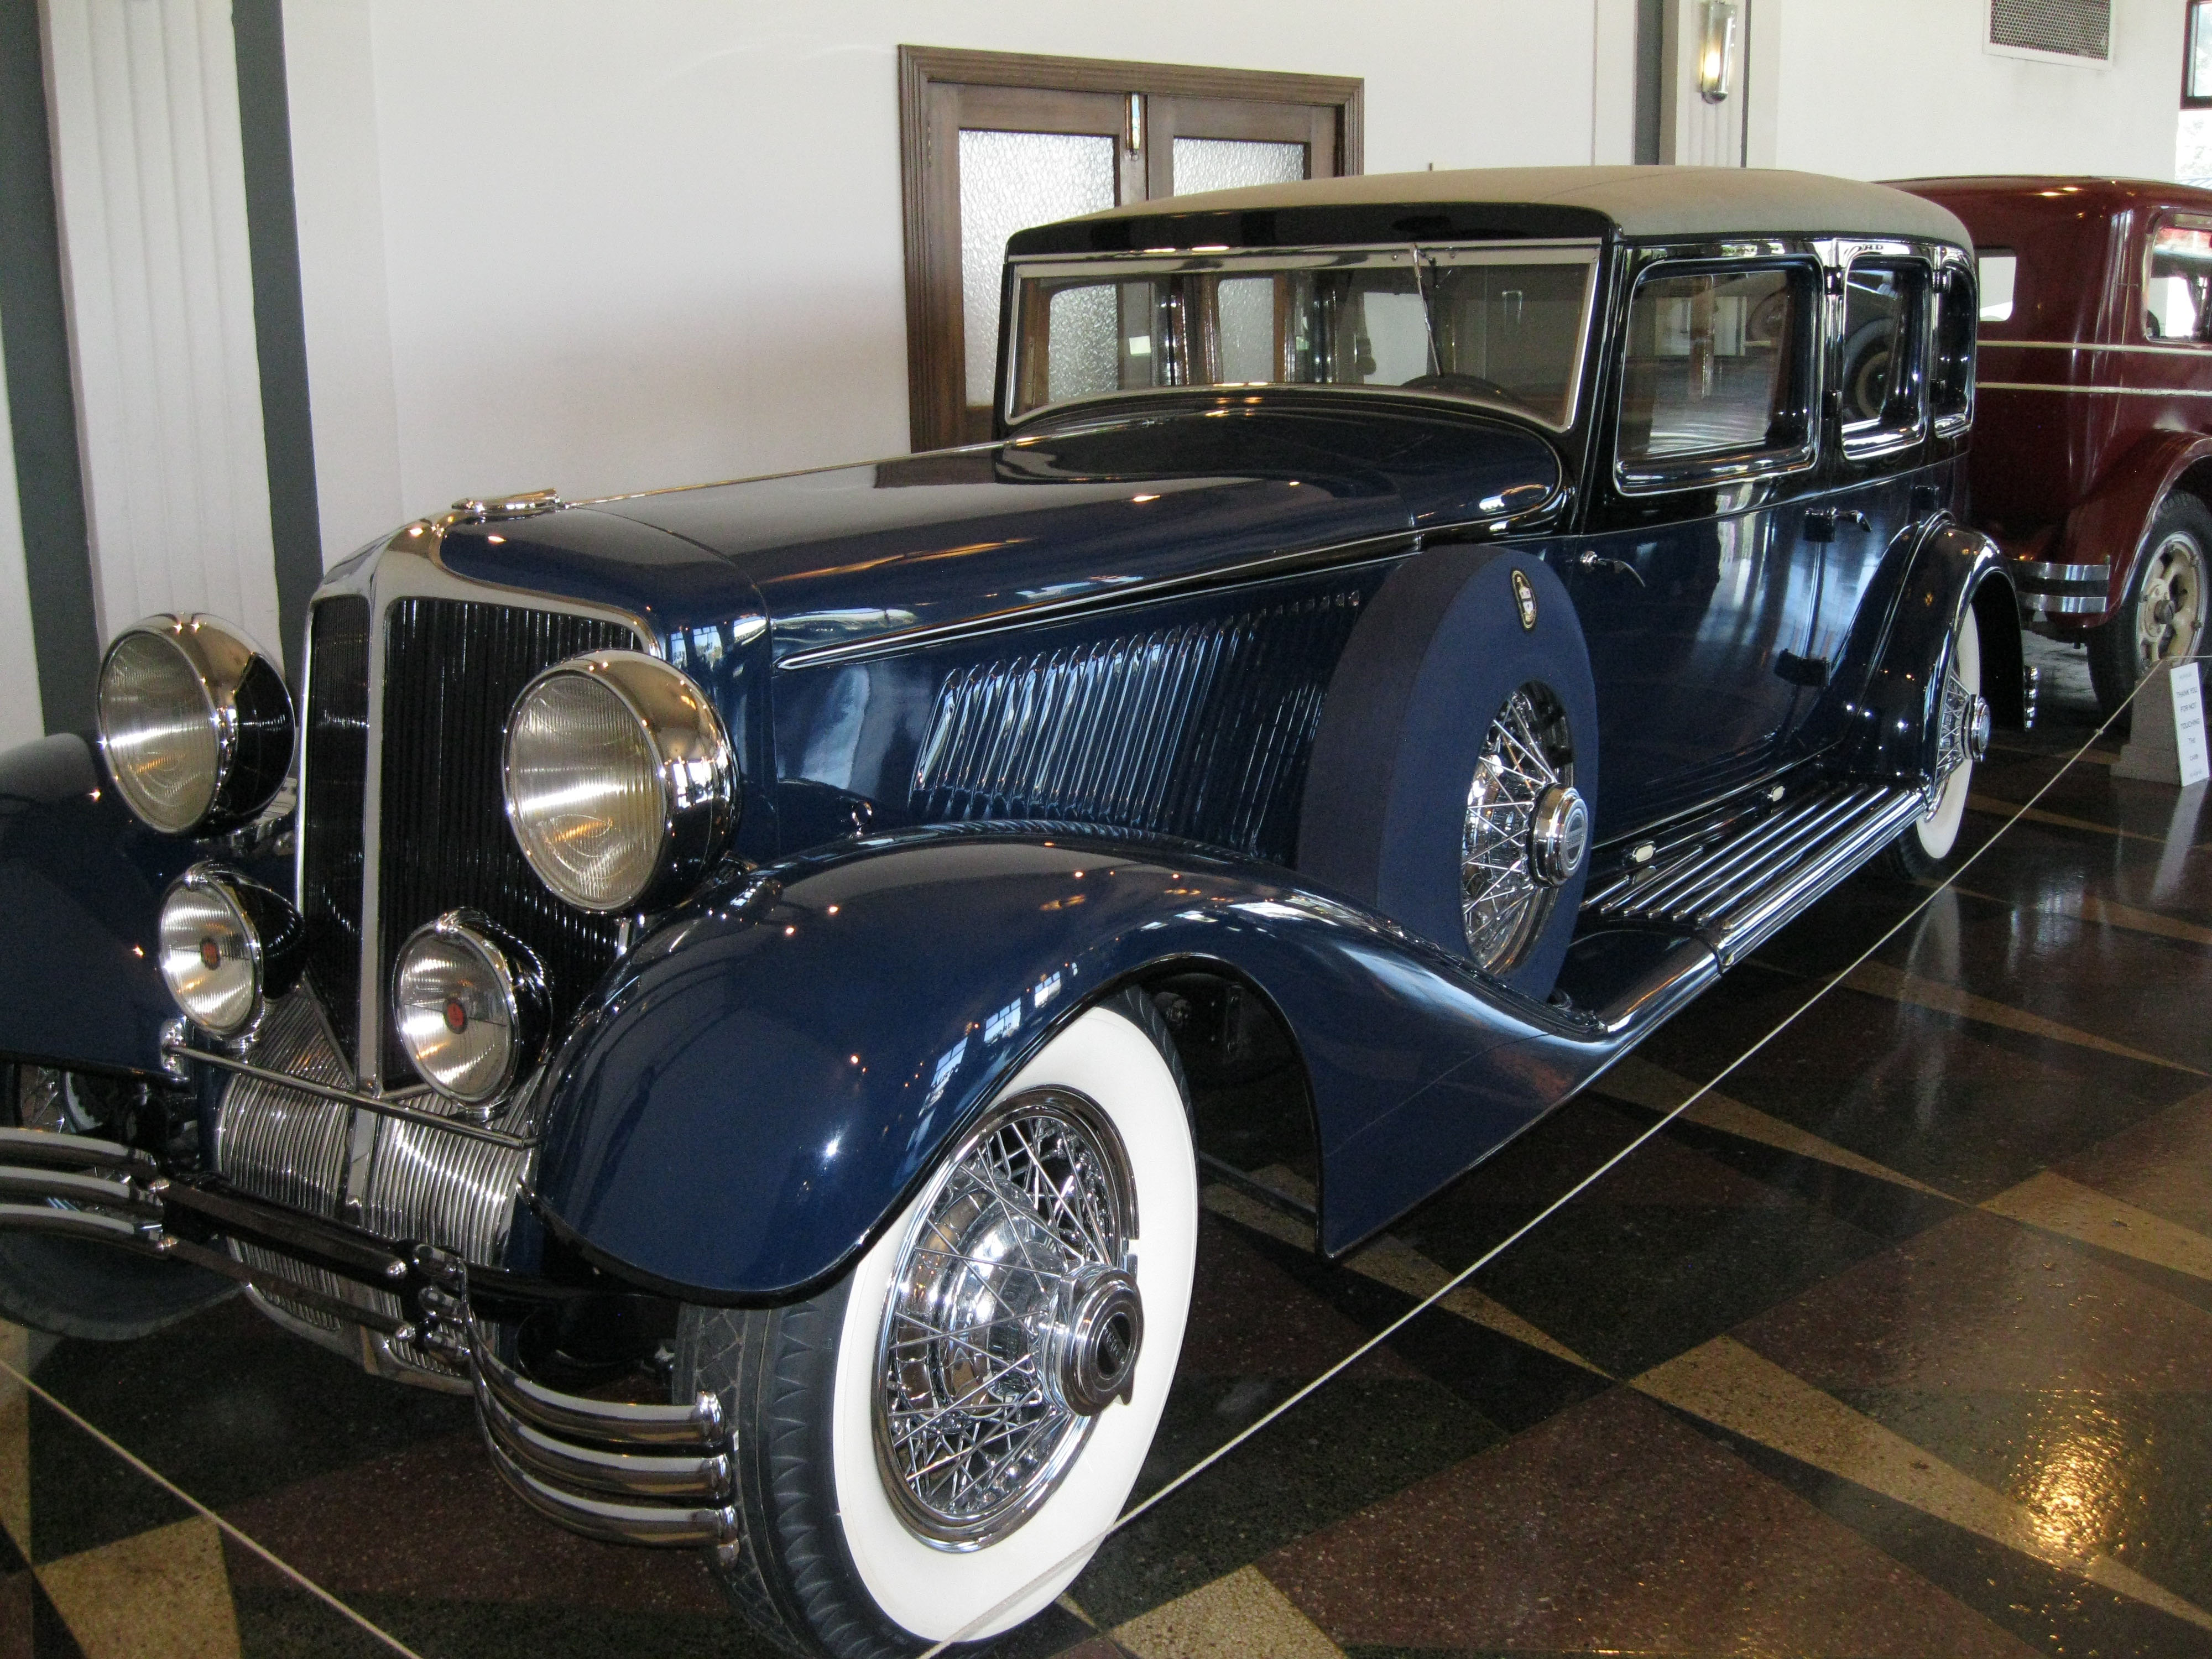 A 1932 Cord is one of the first classics you'll see at the Auburn Cord Duesenberg Automobile Museum in Auburn, Indiana. Photo by Alyssa Cobb.